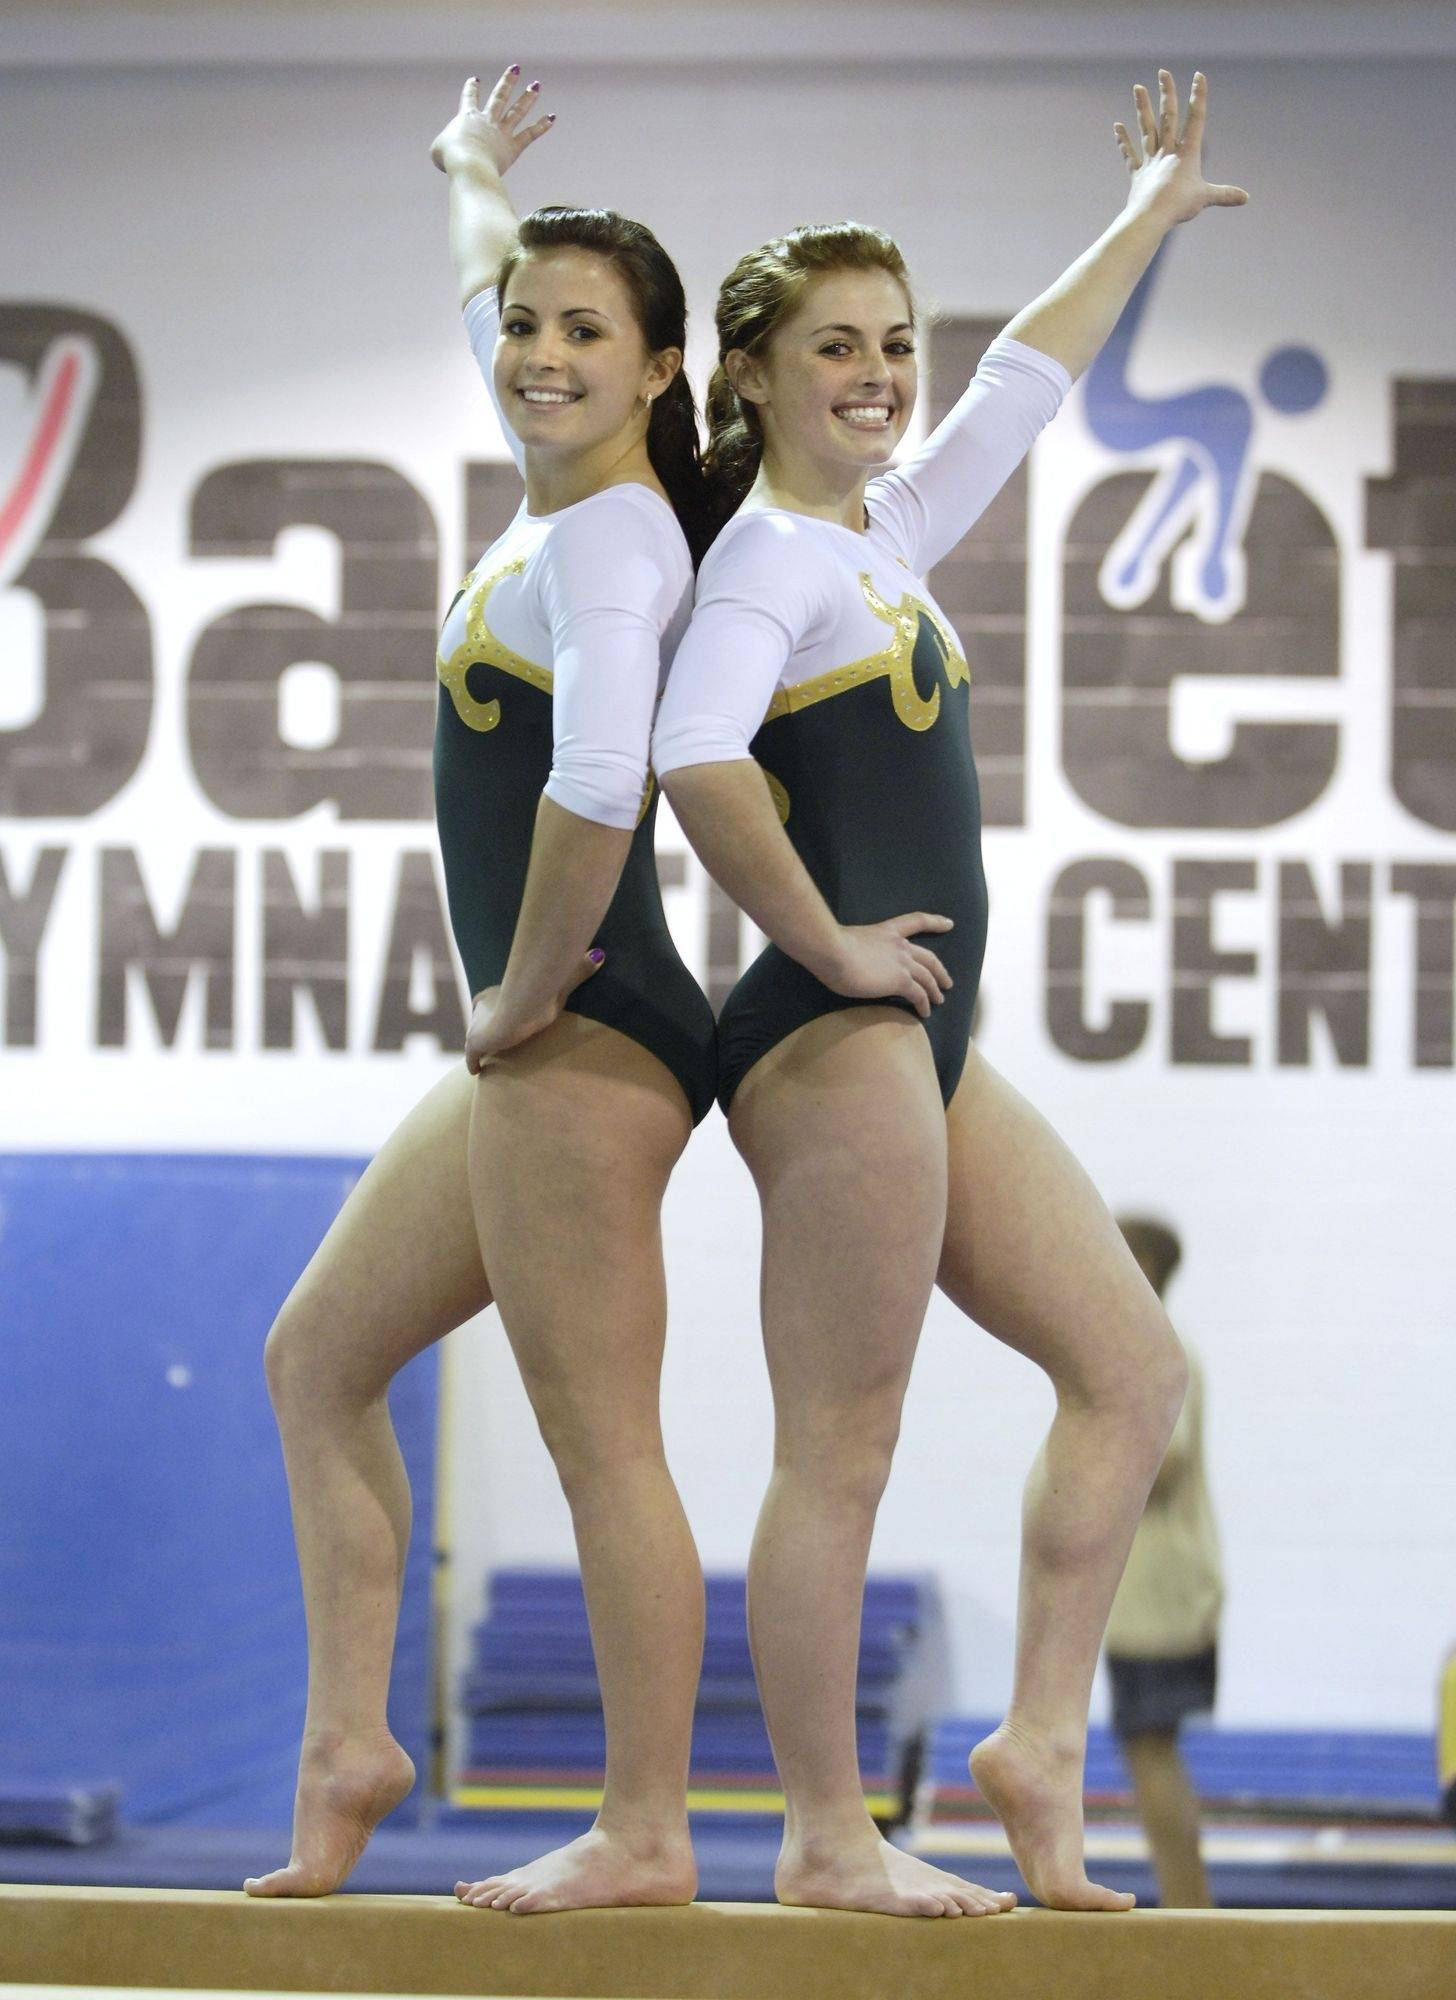 Sisters Jordyn and Abby Madden of St. Edward have had great success in high school gymnastics meets this season.